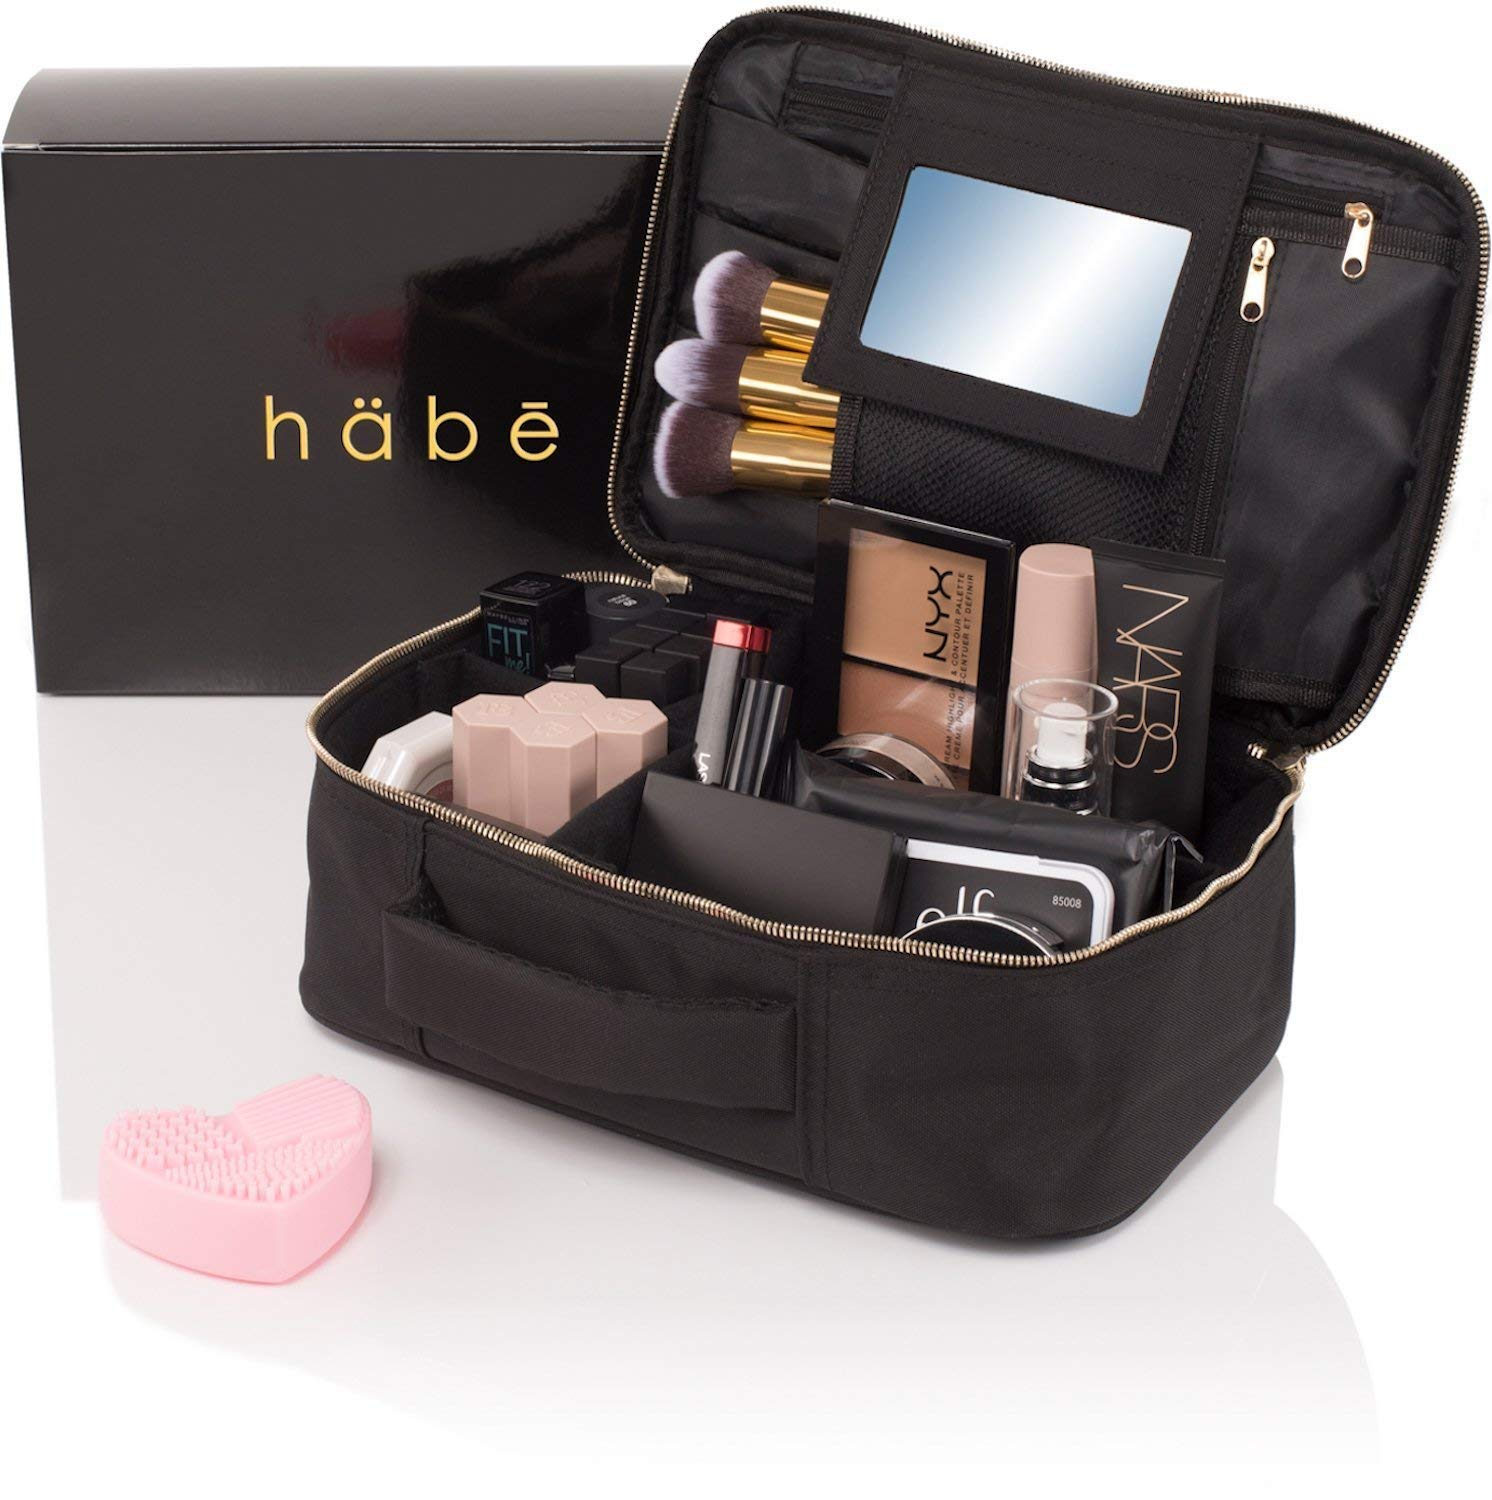 habe Travel Makeup Bag with Mirror